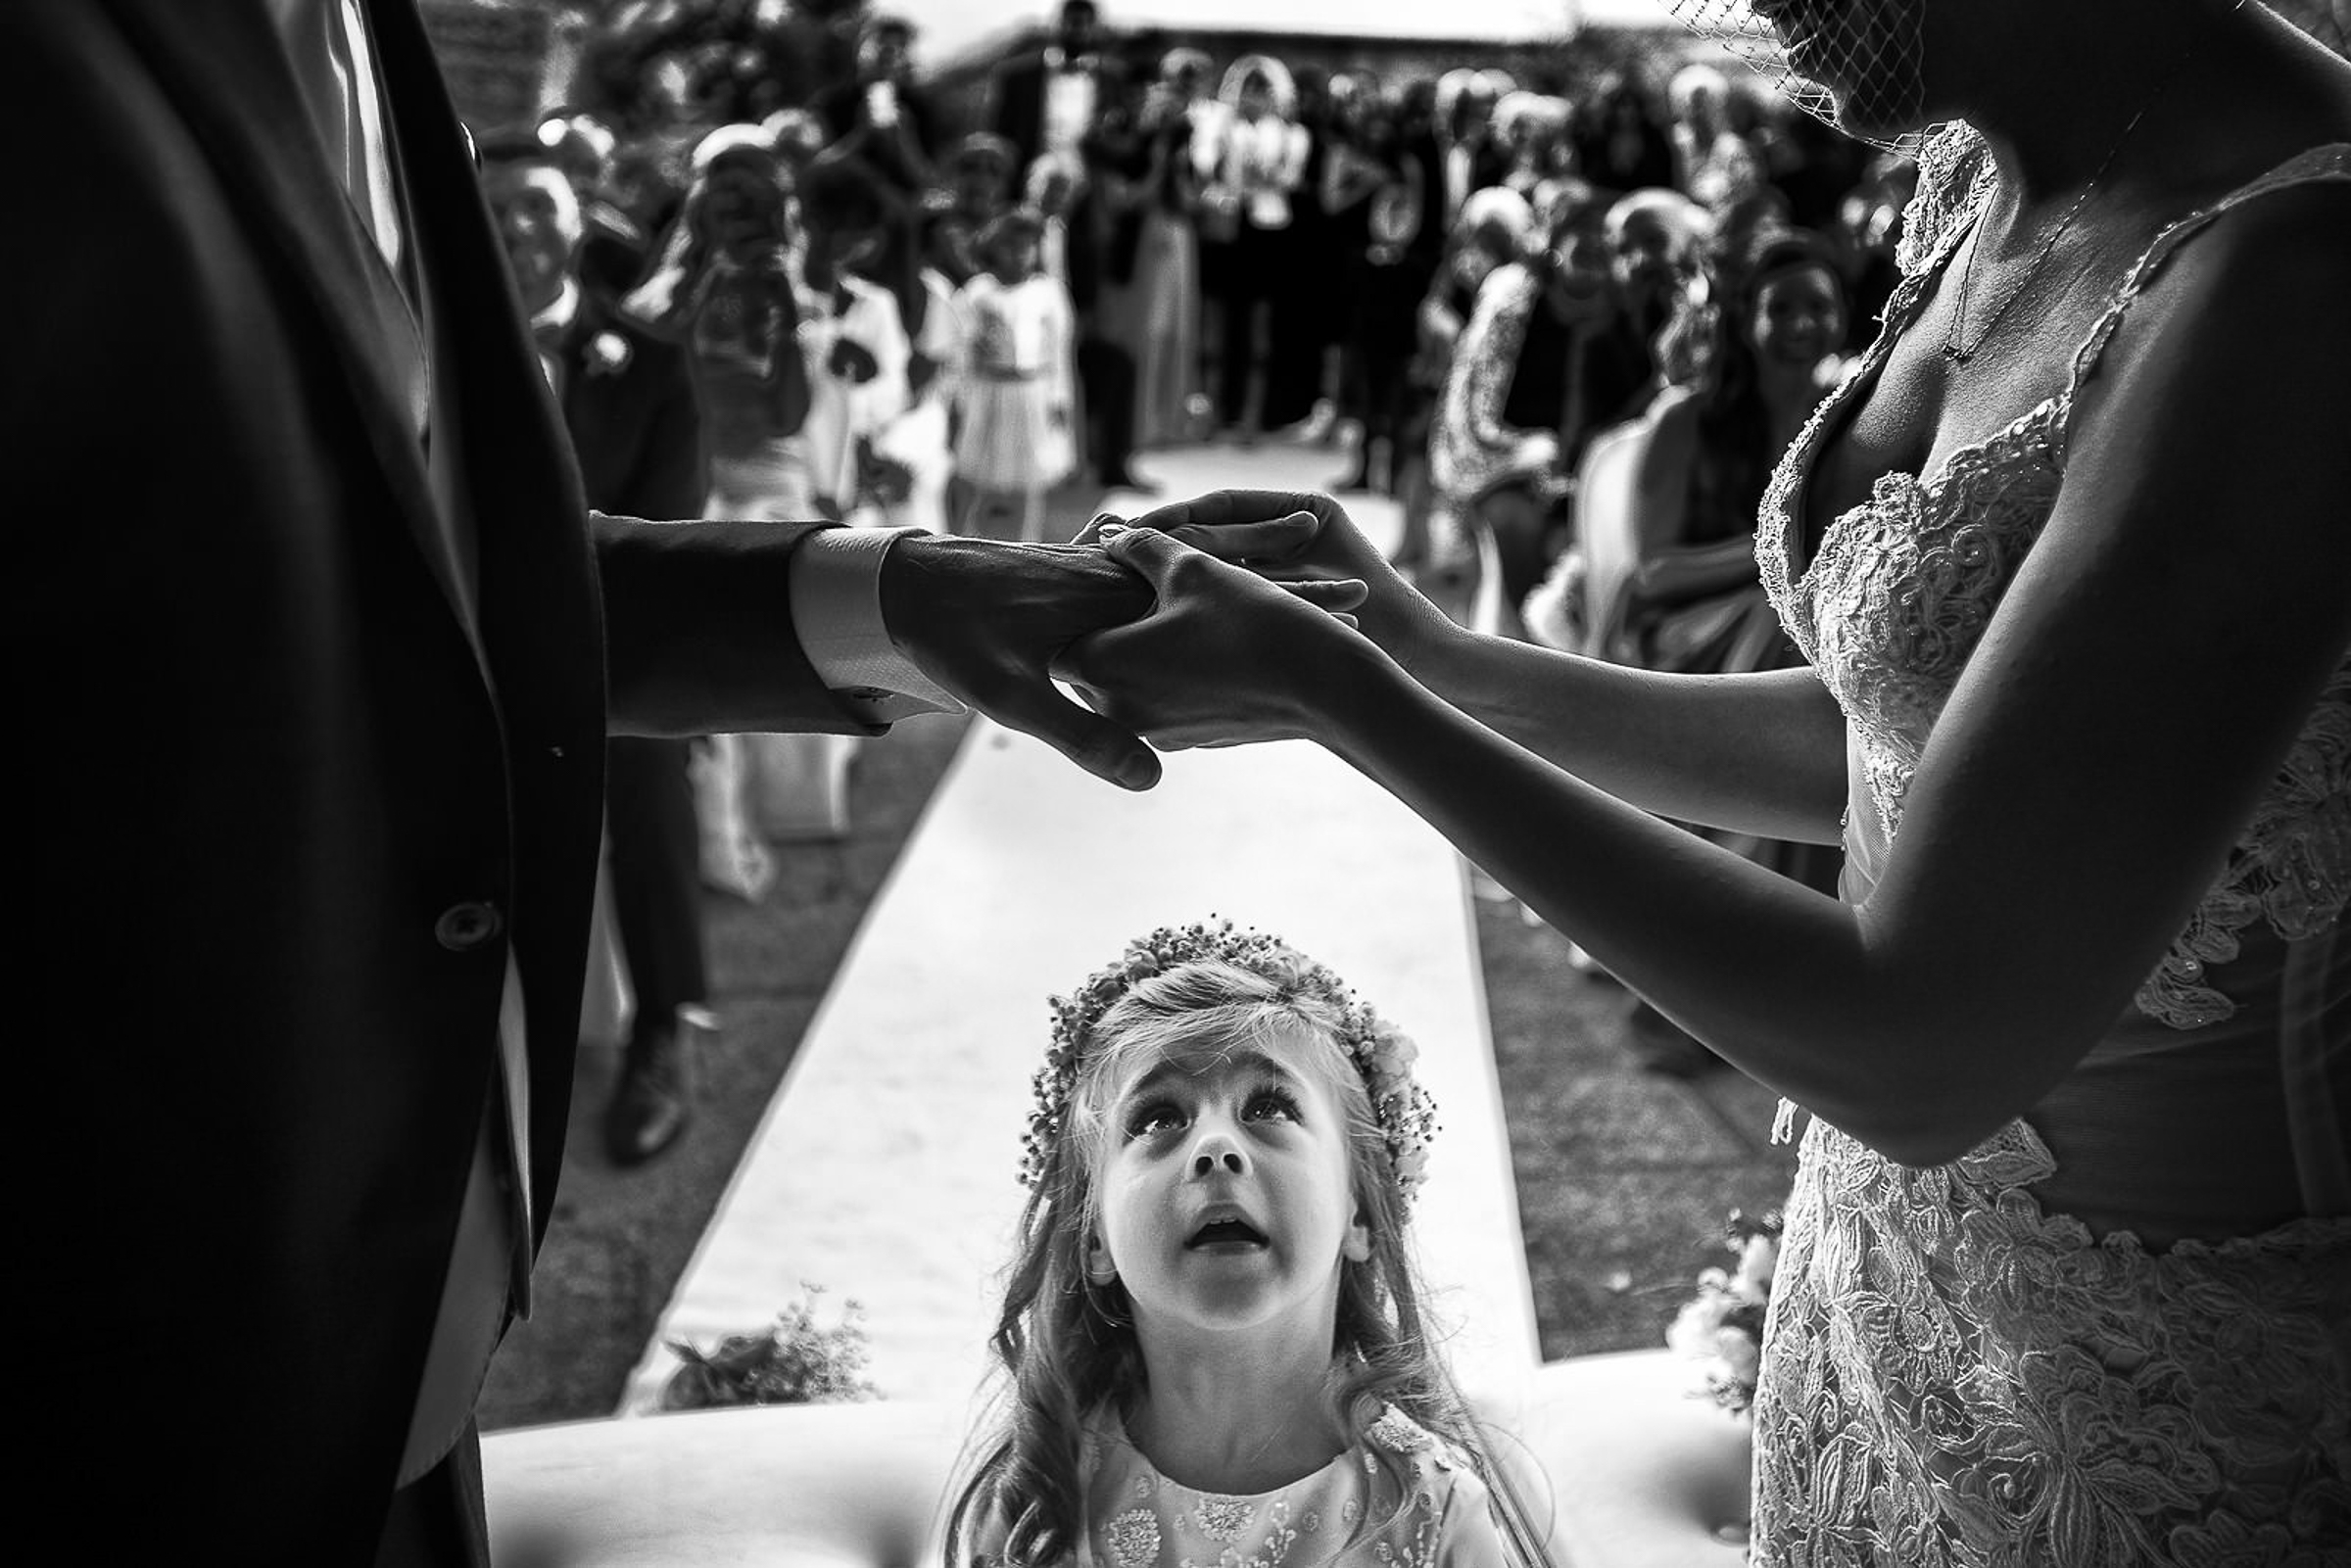 photo-of-little-girl-watching-ring-exchange-cermony-by-rino-cordella-in-puglia-italy